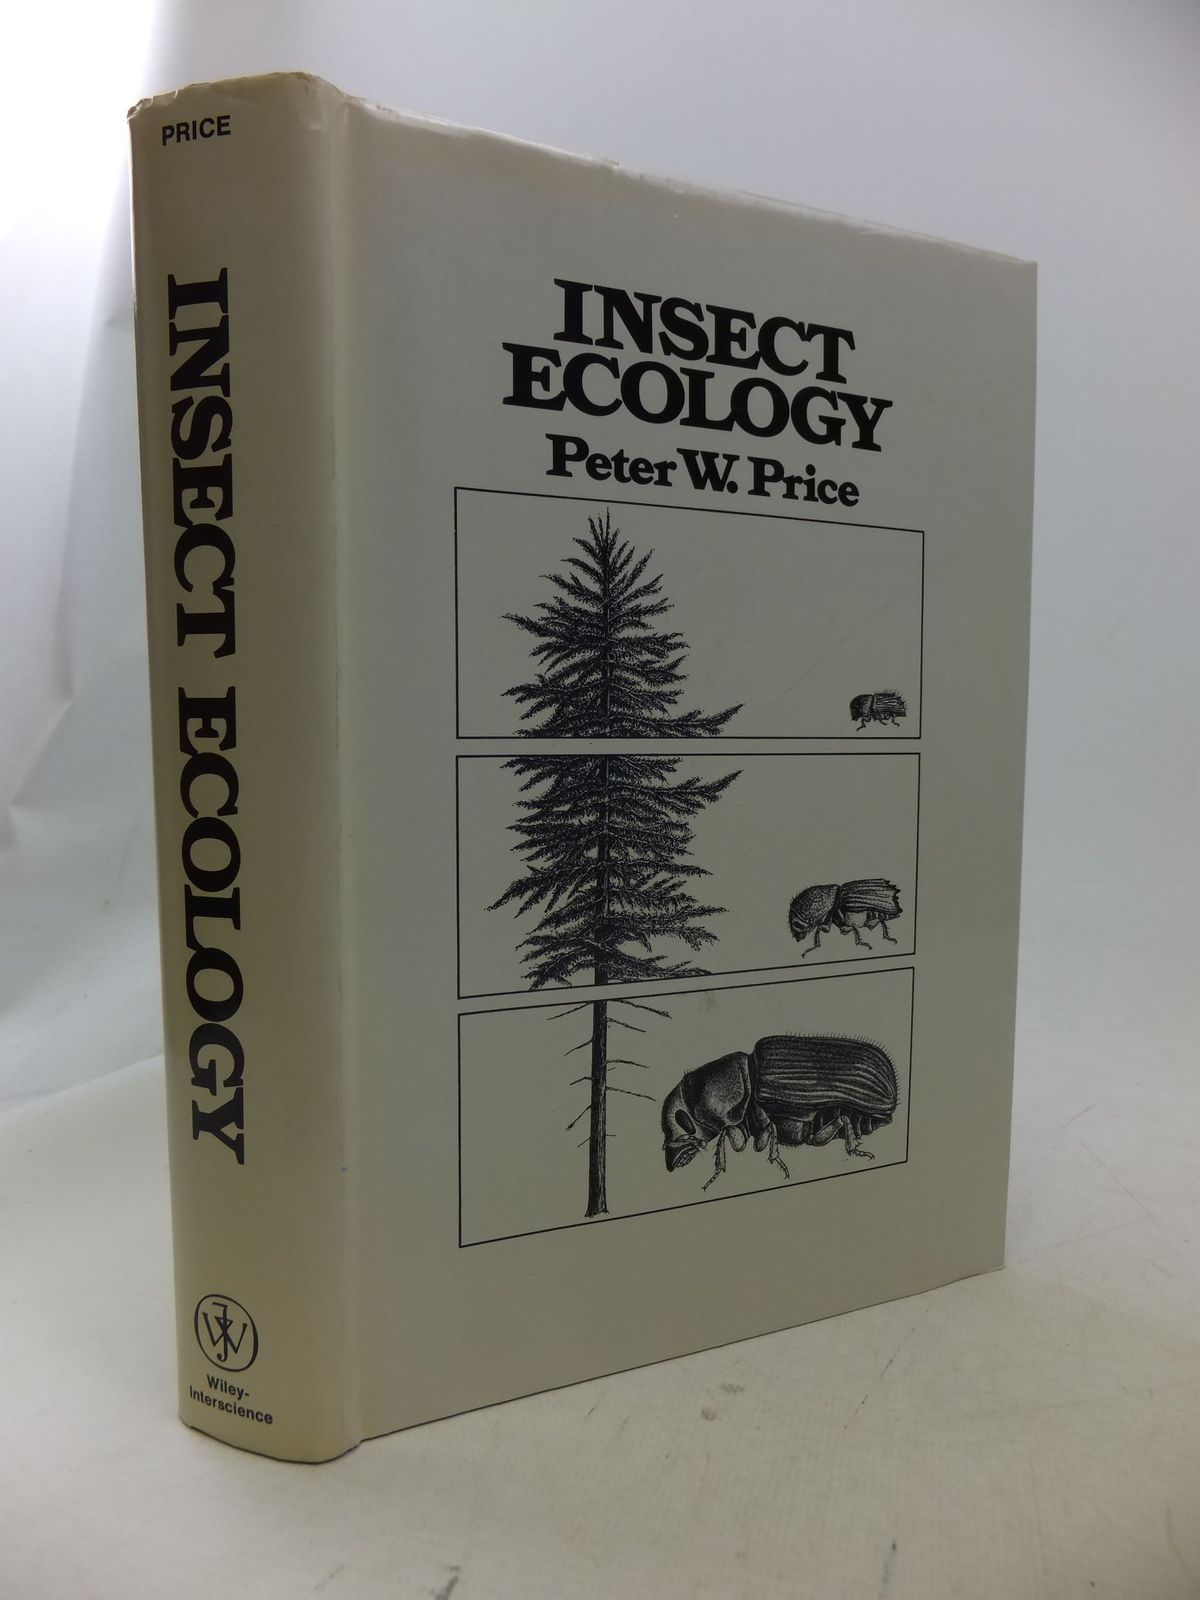 Photo of INSECT ECOLOGY written by Price, Peter W. published by Wiley-Interscience (STOCK CODE: 1710851)  for sale by Stella & Rose's Books